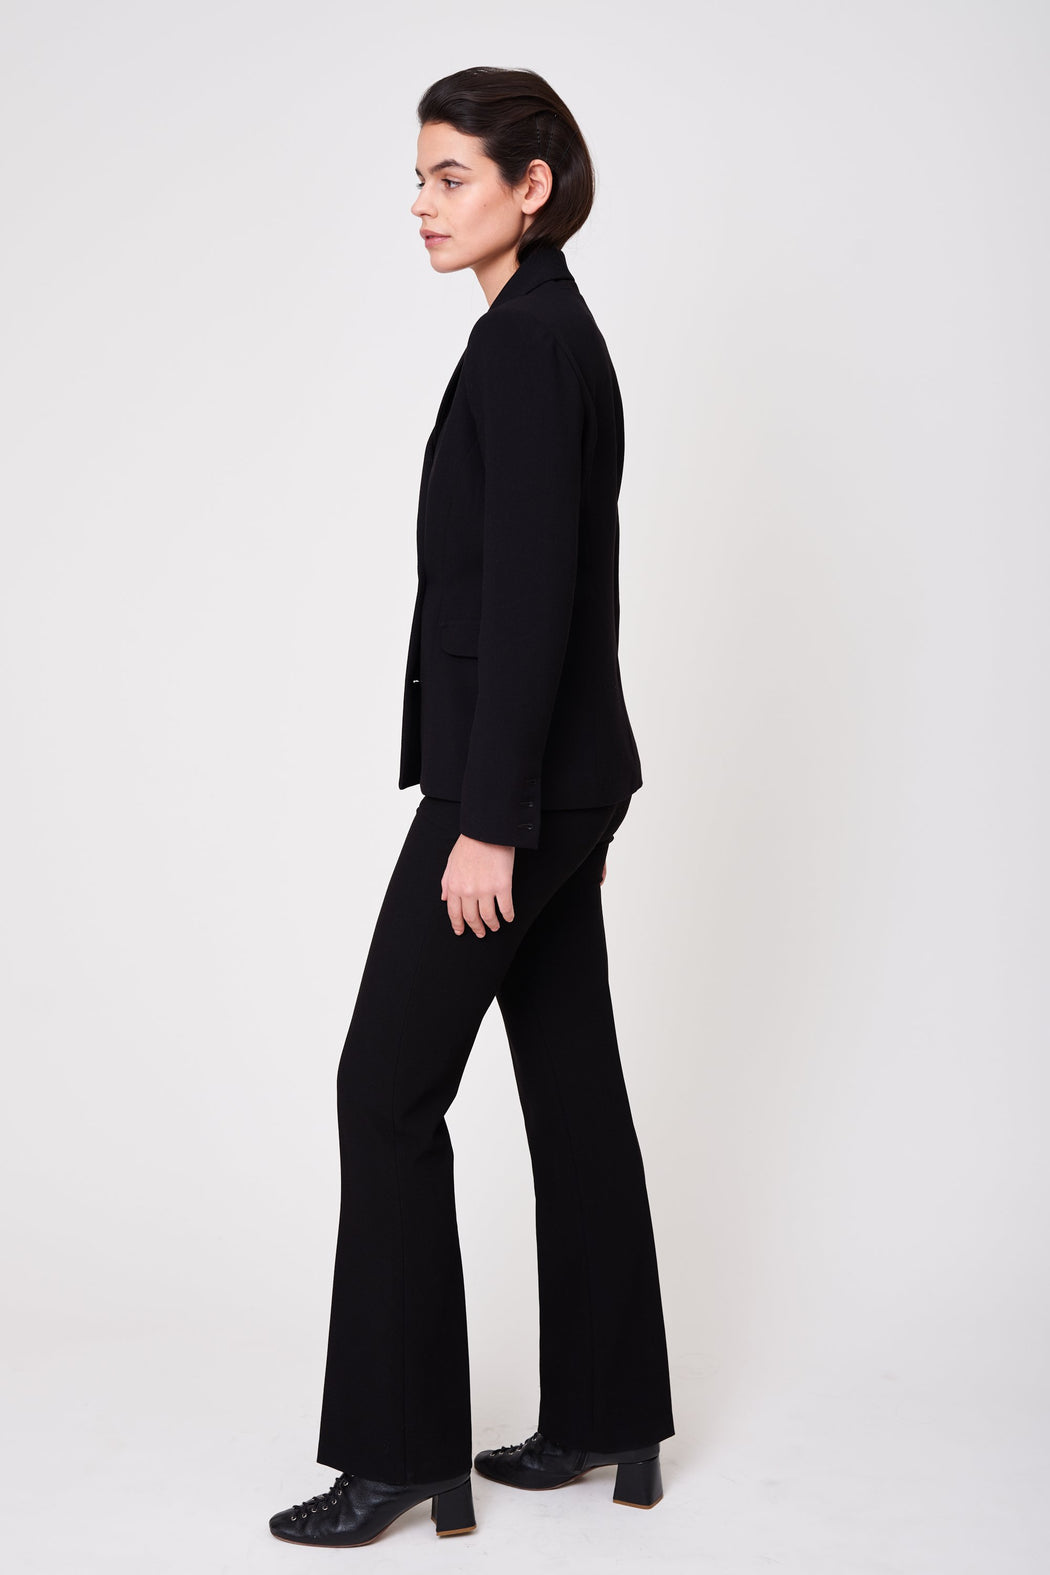 BLACK COLETTE PANTS - Admitted